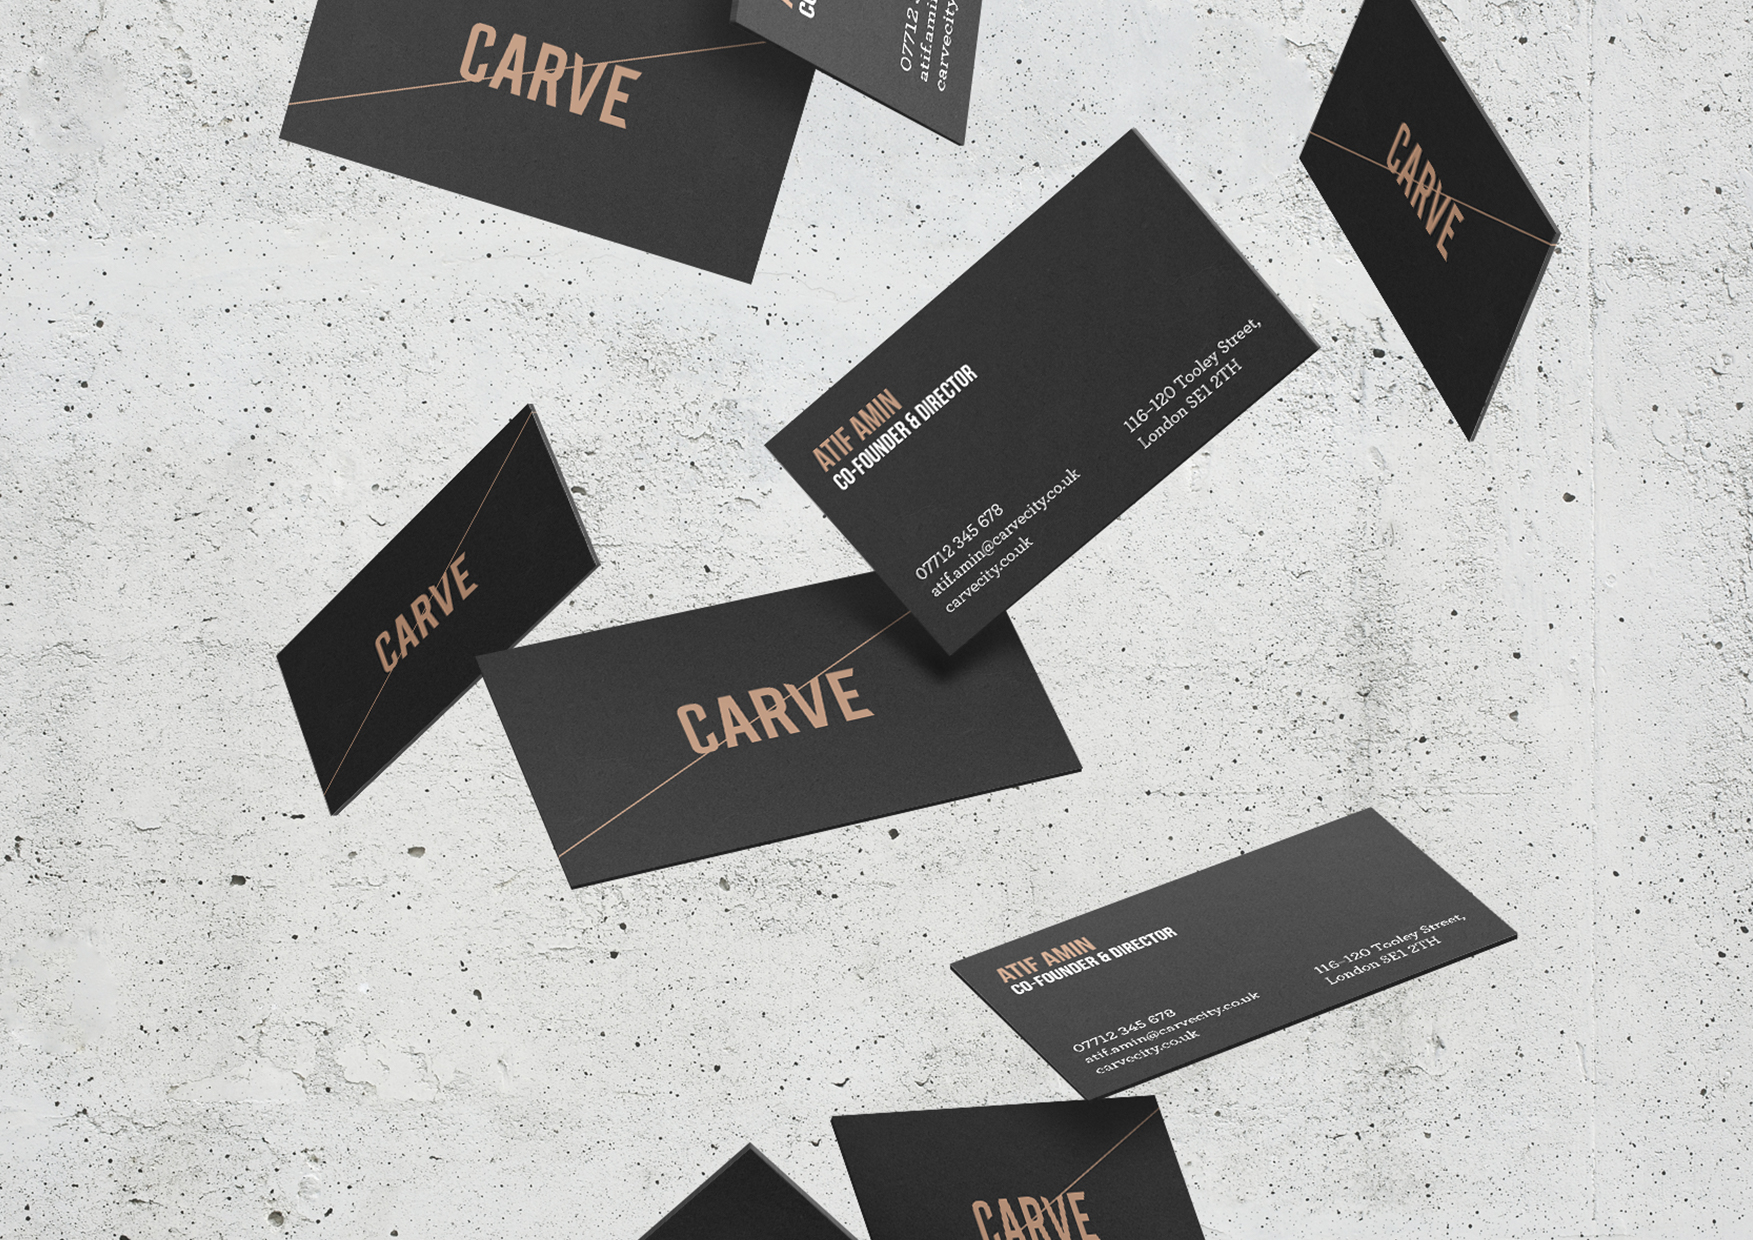 Carve Business Card Design Benjamin Michael Design